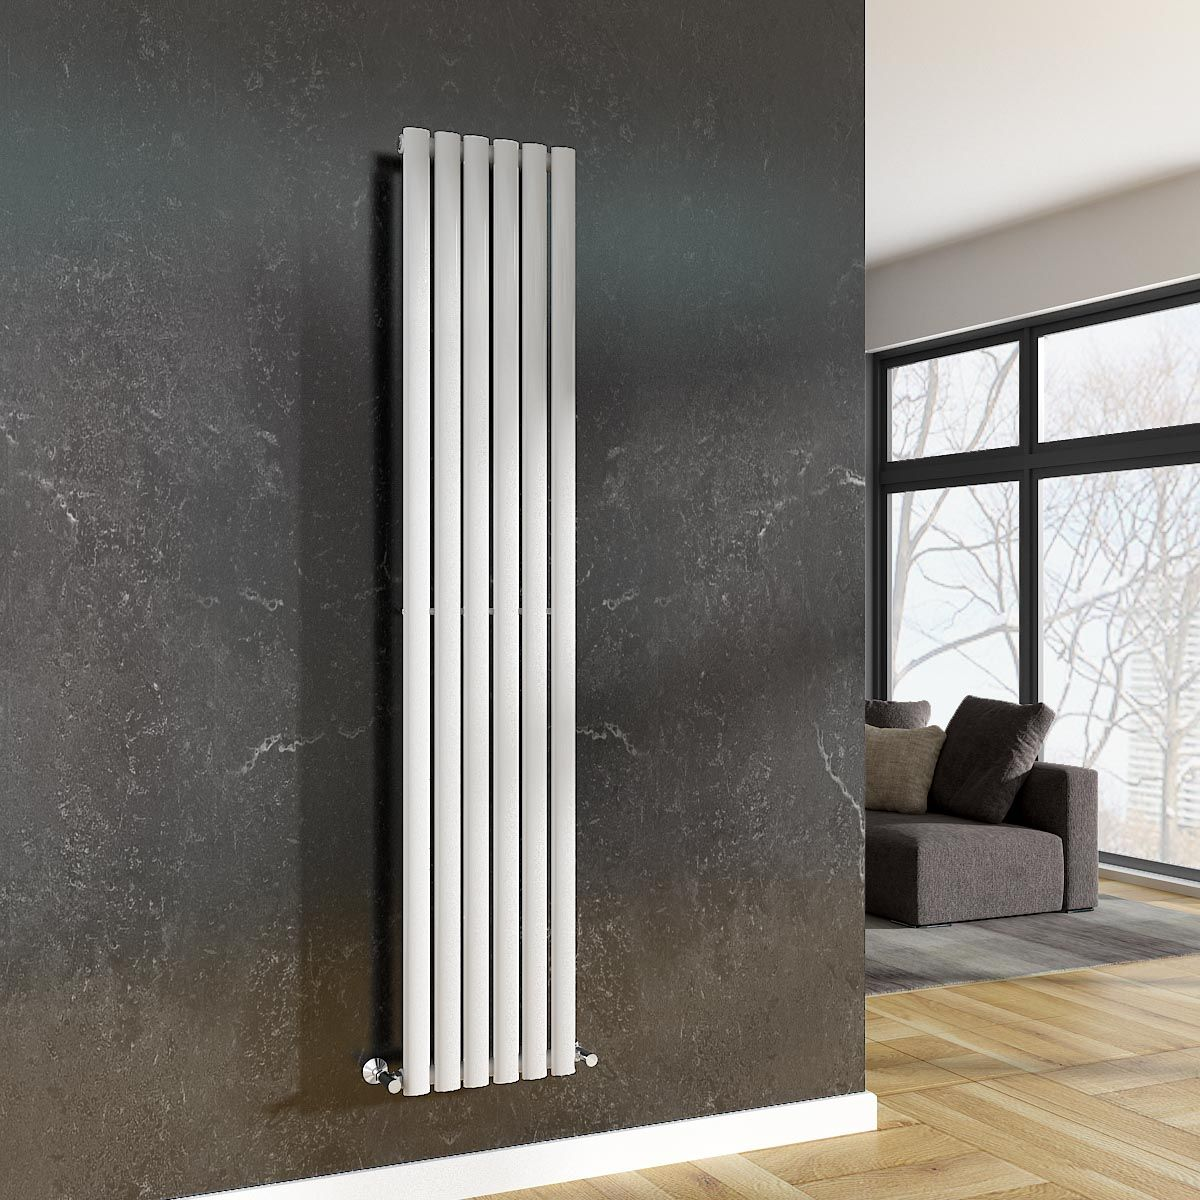 Chrome radiators add a contemporary feel to your space